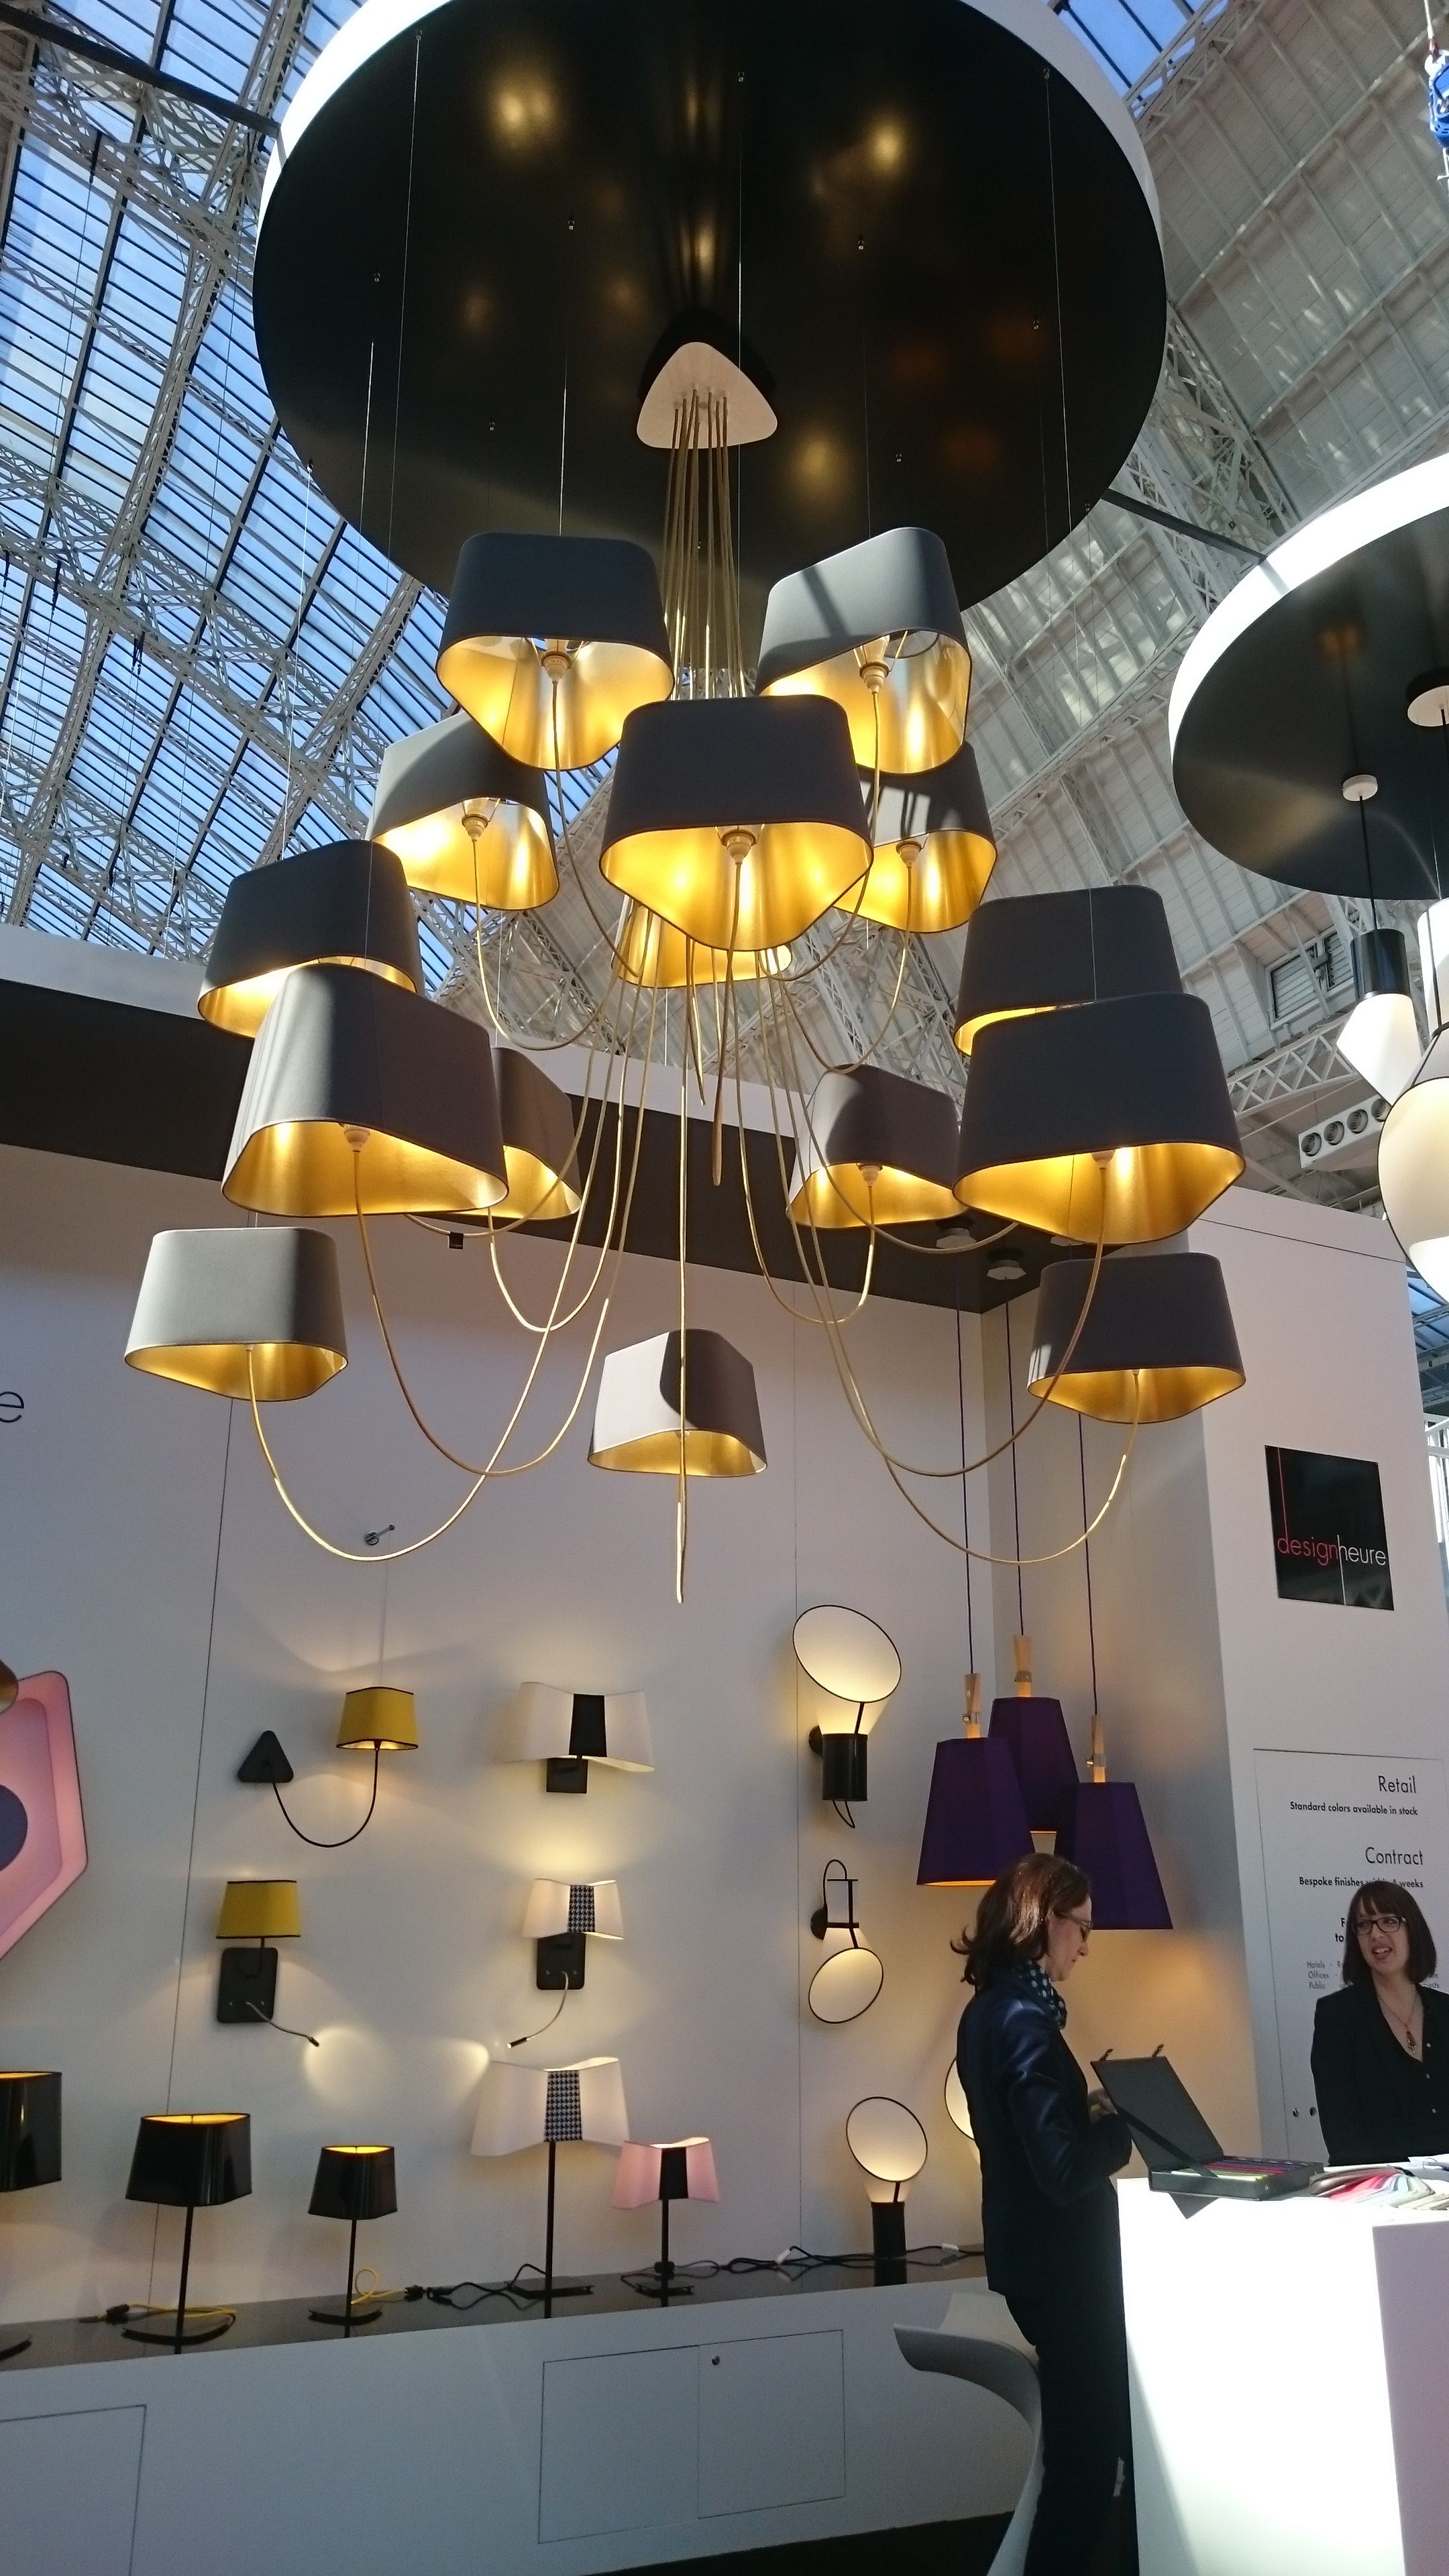 Clarabell Blackbody Oled Lamp Under Bell Pinterest Lustre Grand Nuage Designheure Salon 100 Design London Design